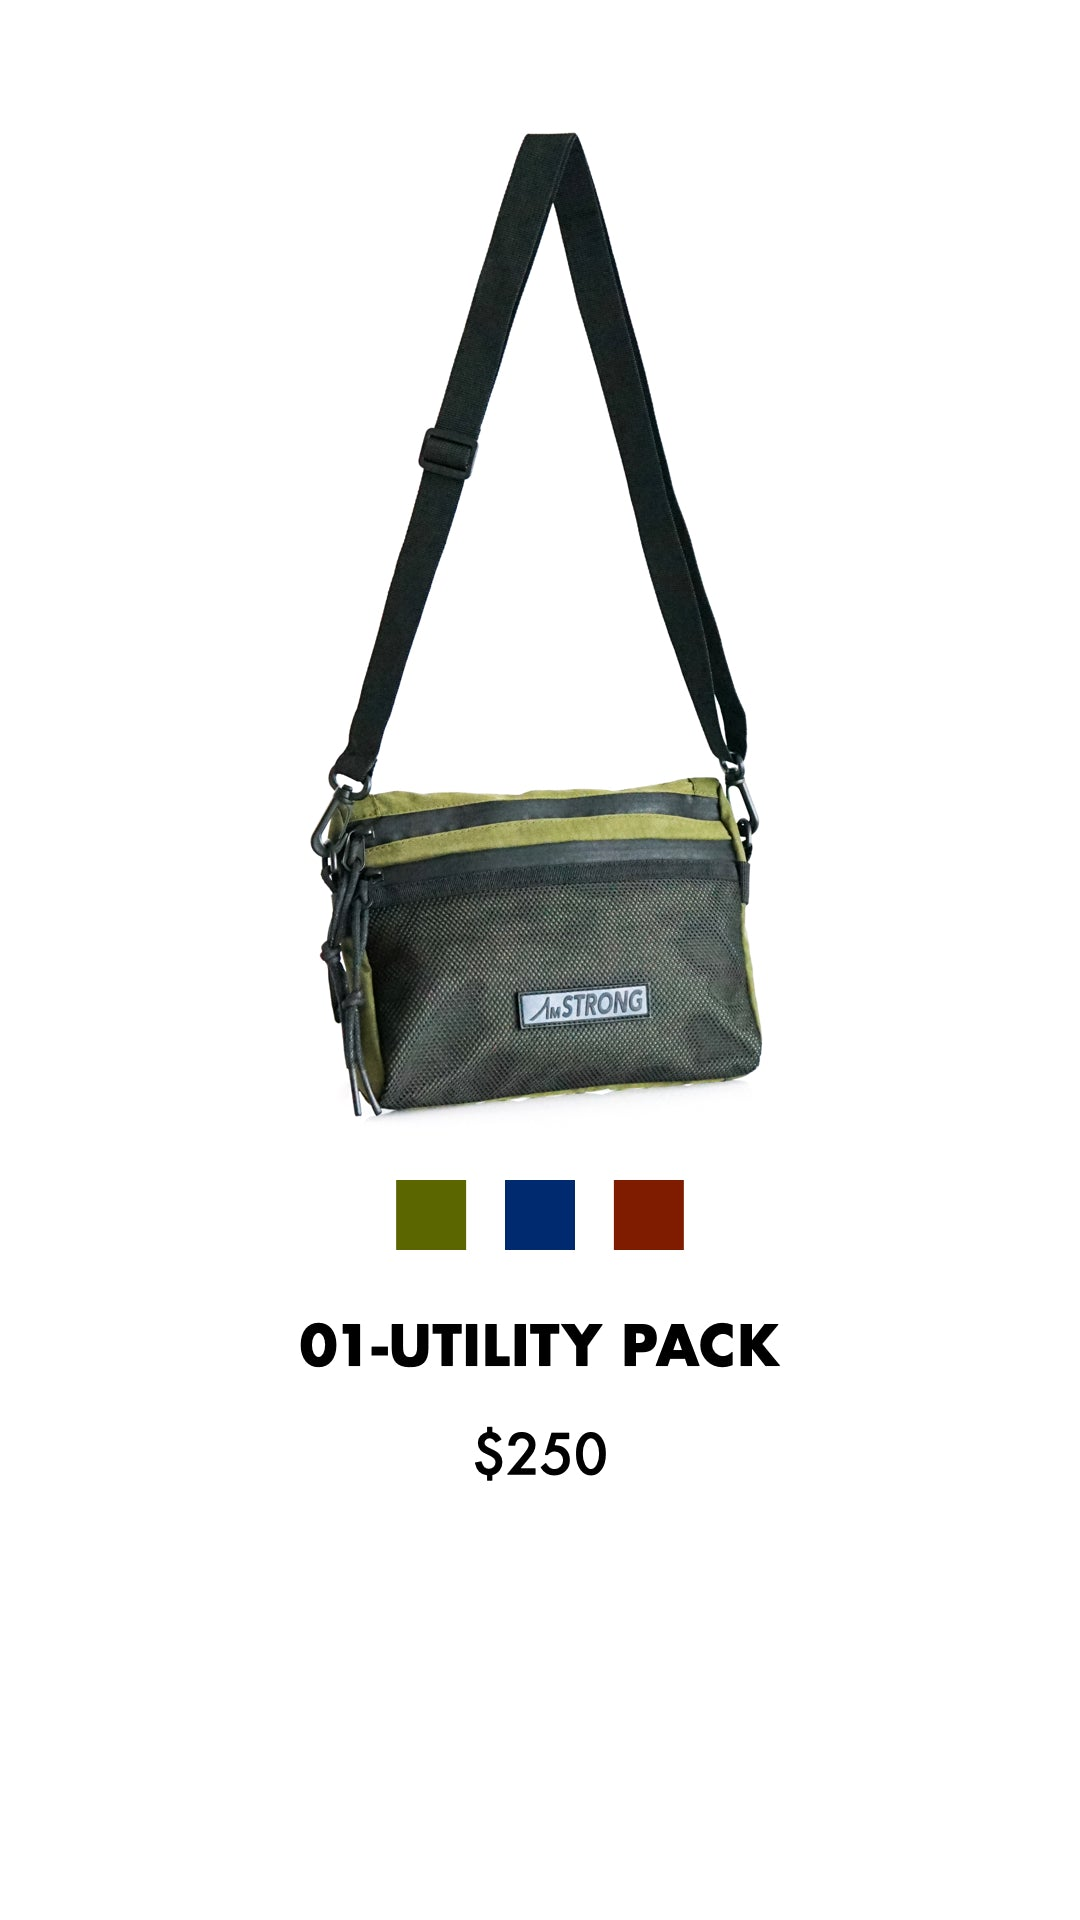 AmSTRONG | 01-UTILITY PACK